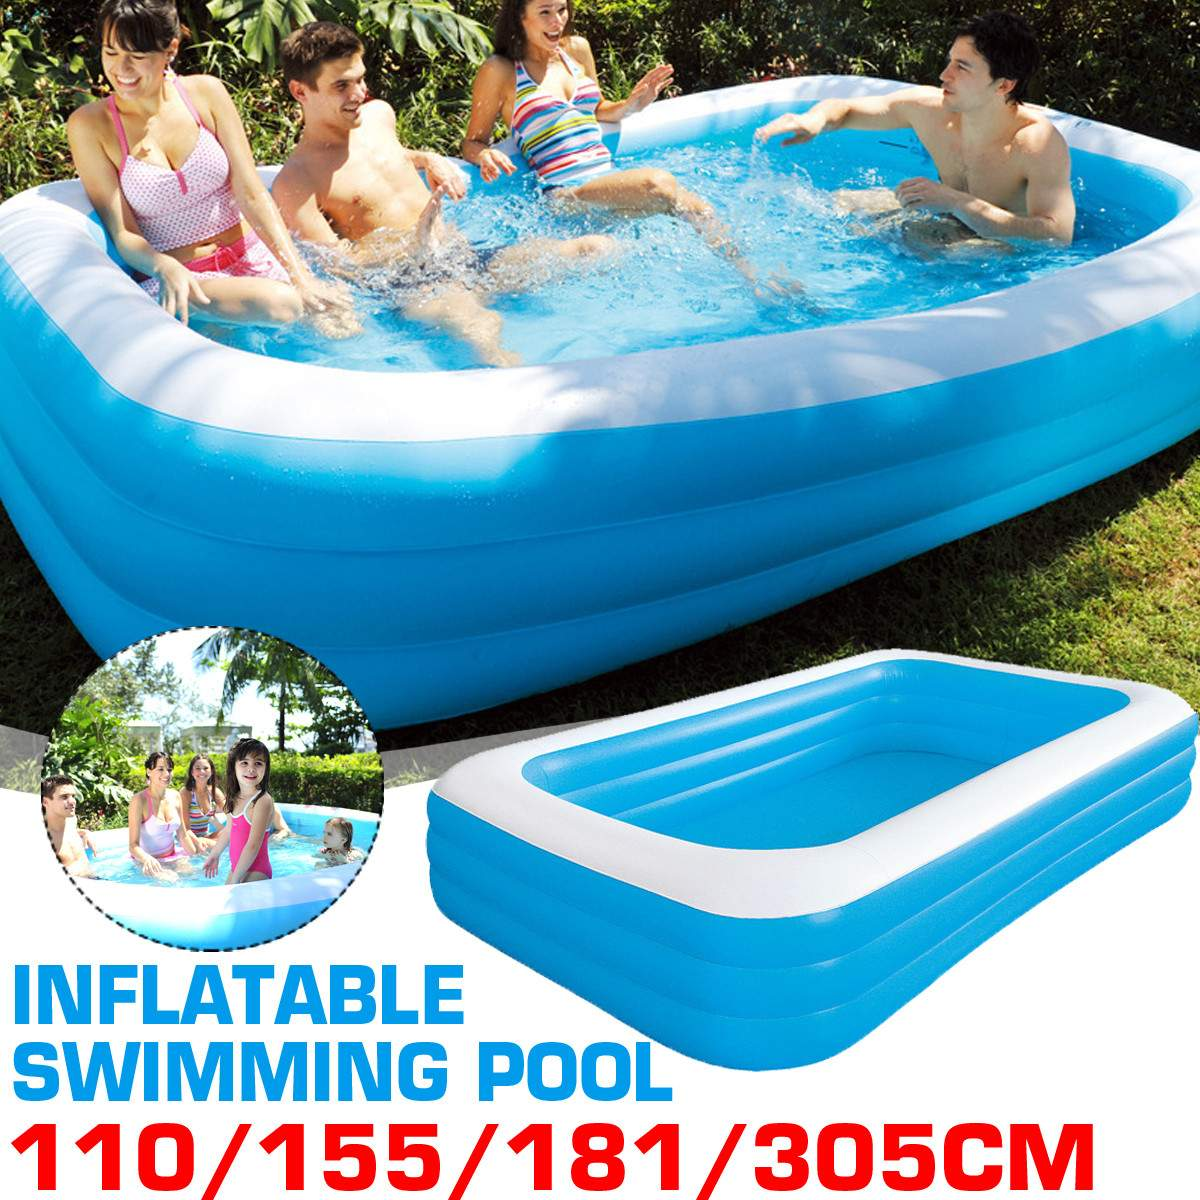 big-size-110-305m-inflatable-swimming-pool-three-double-layers-thickened-pvc-garden-family-paddling-pool-for-kids-adults